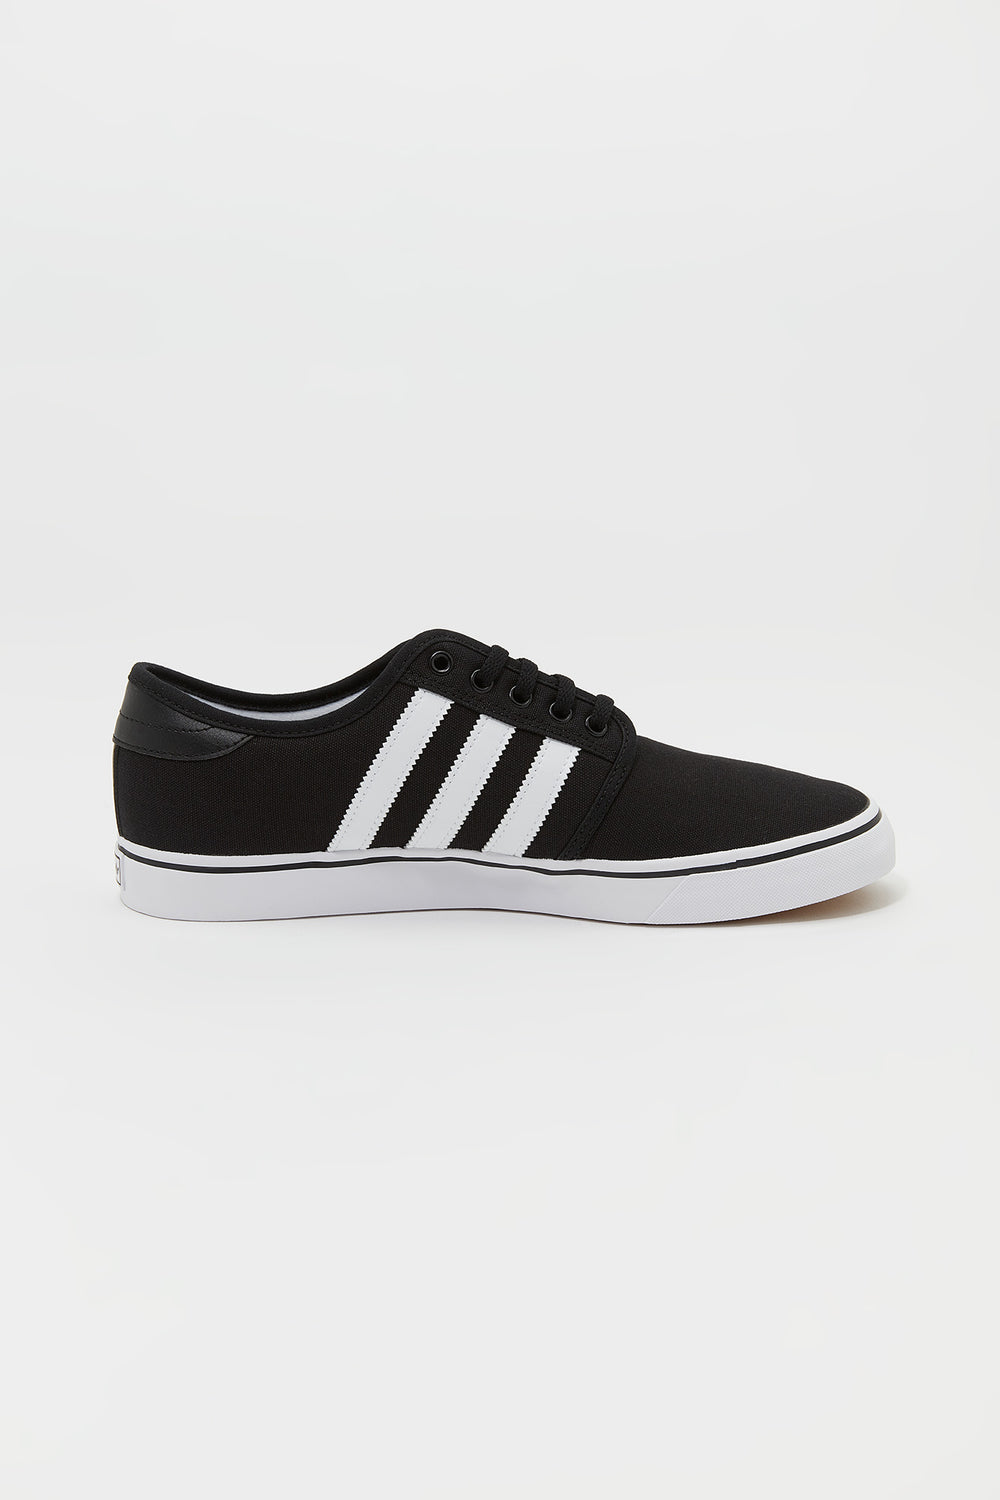 Adidas Mens Seeley Skate Shoes Black with White